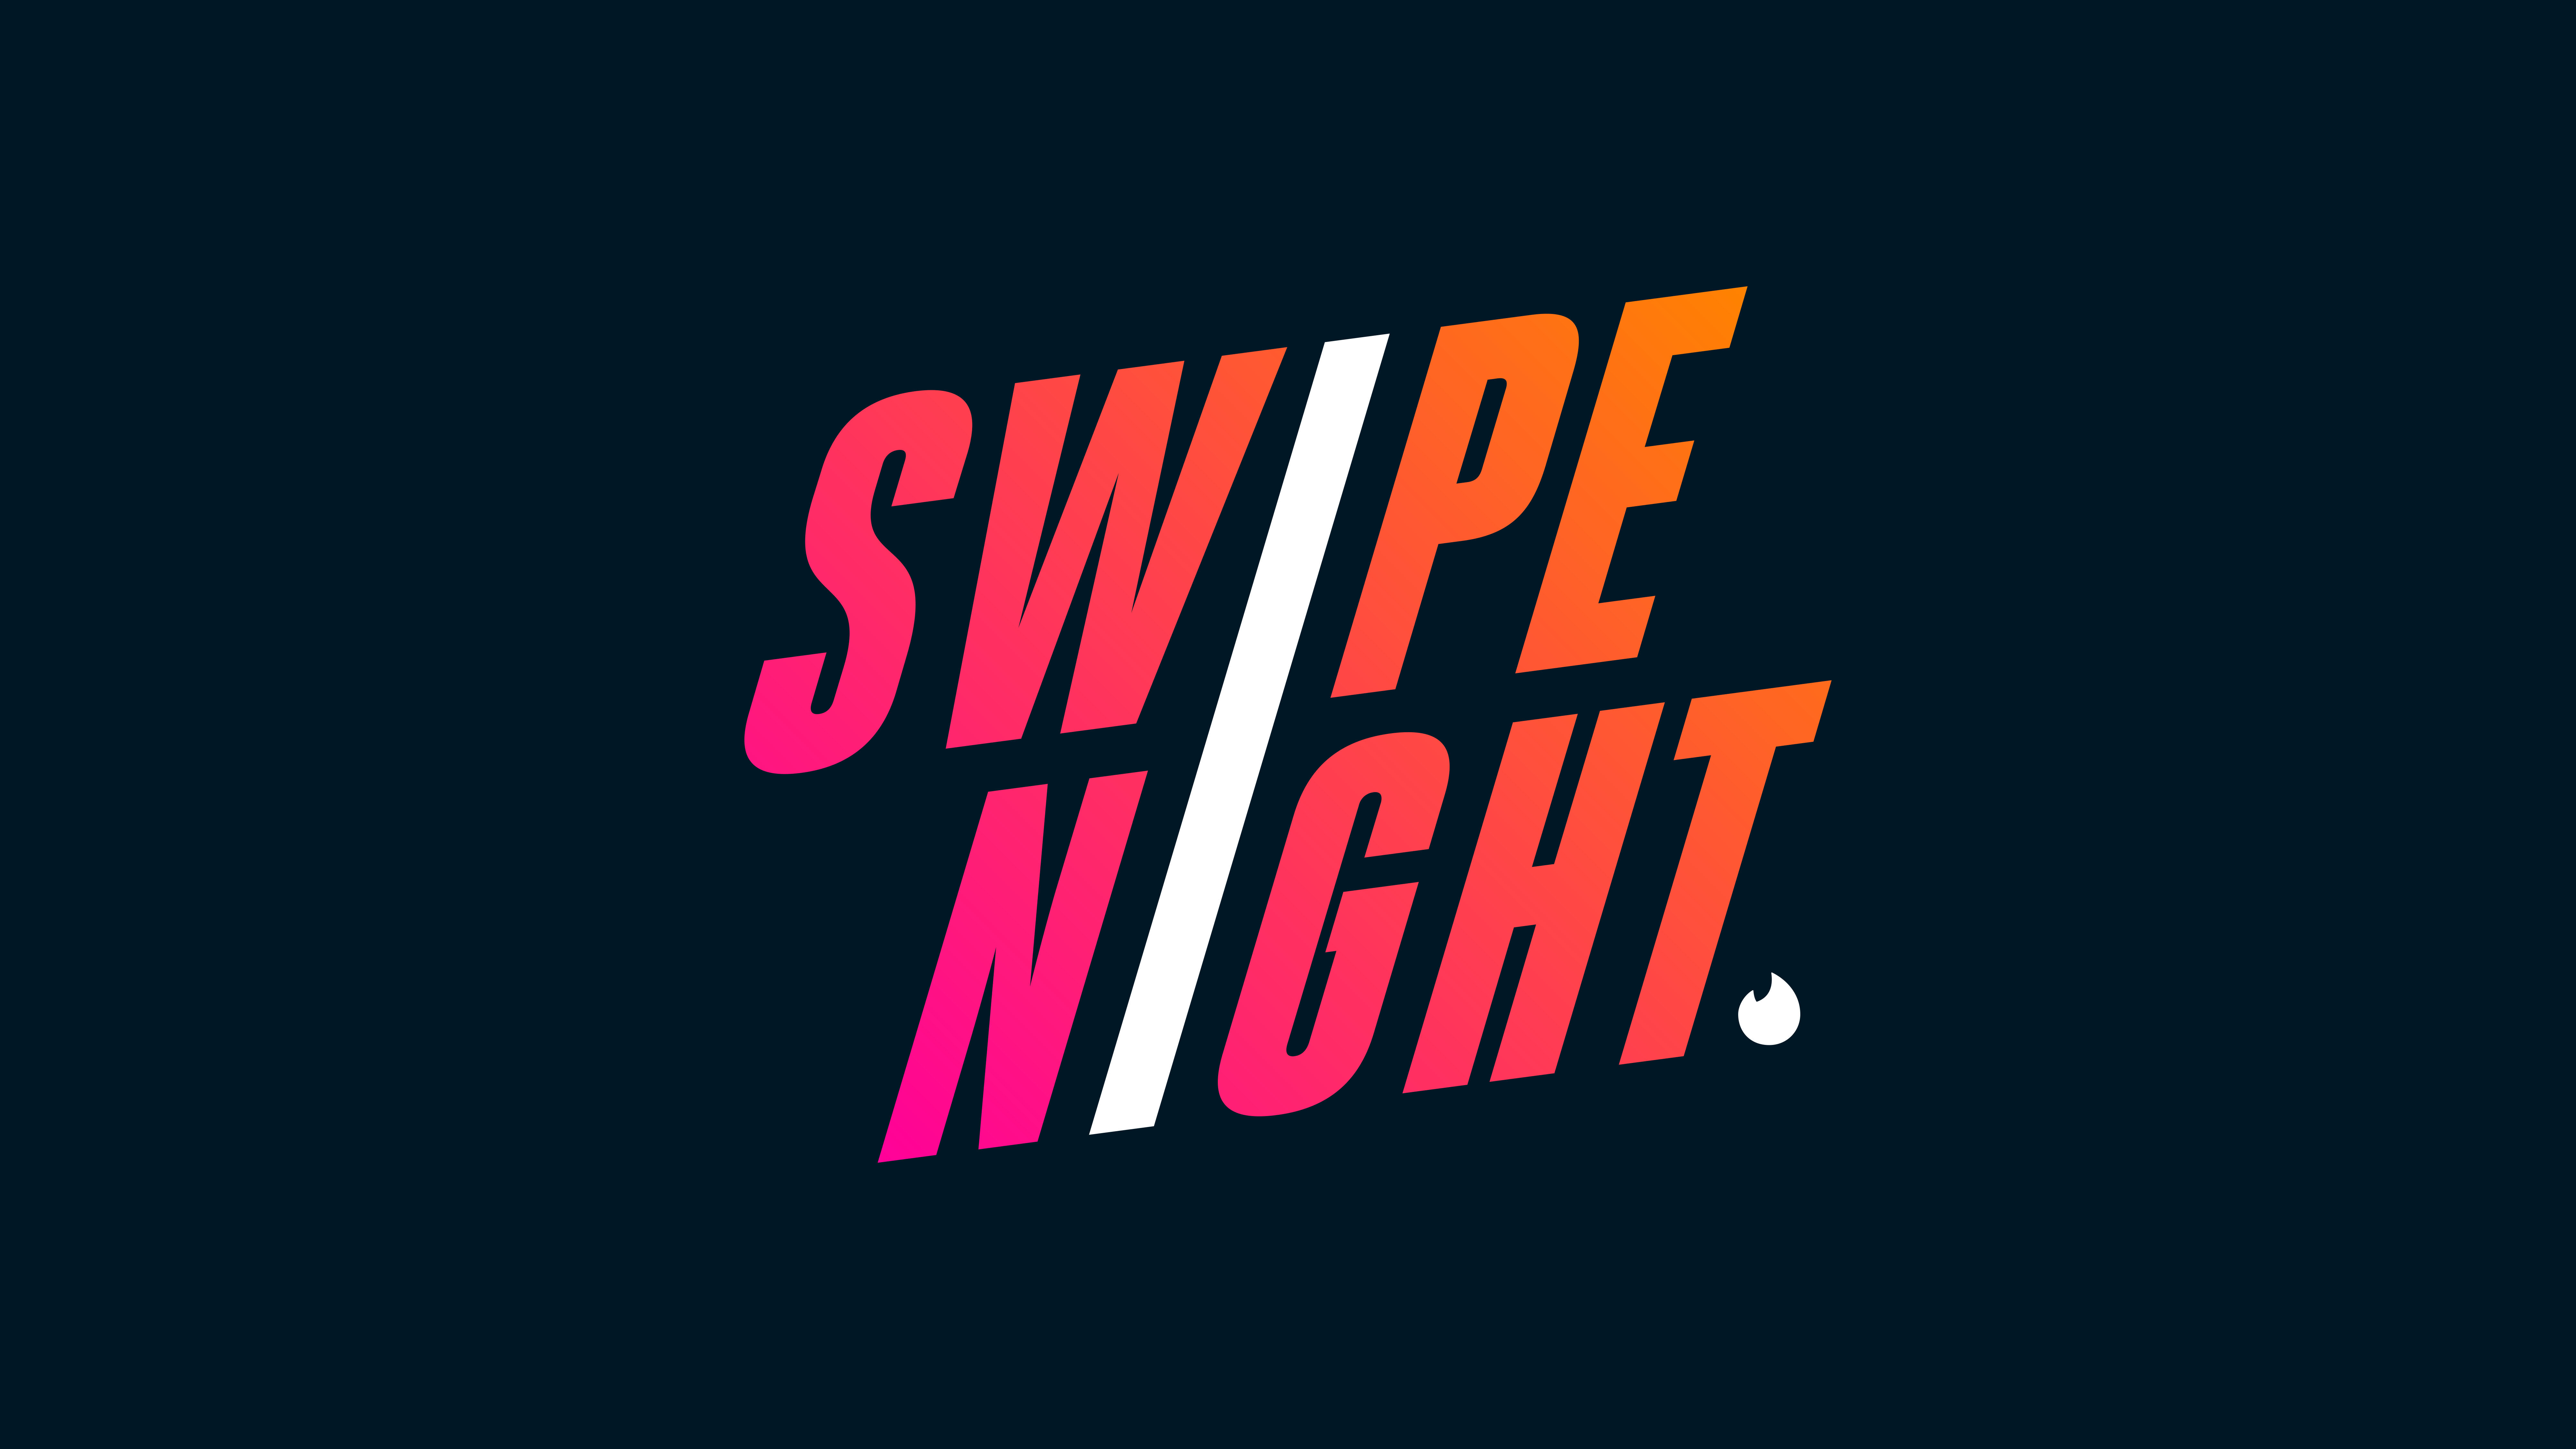 Second Series of Tinder's 'Swipe Night' Coming in November